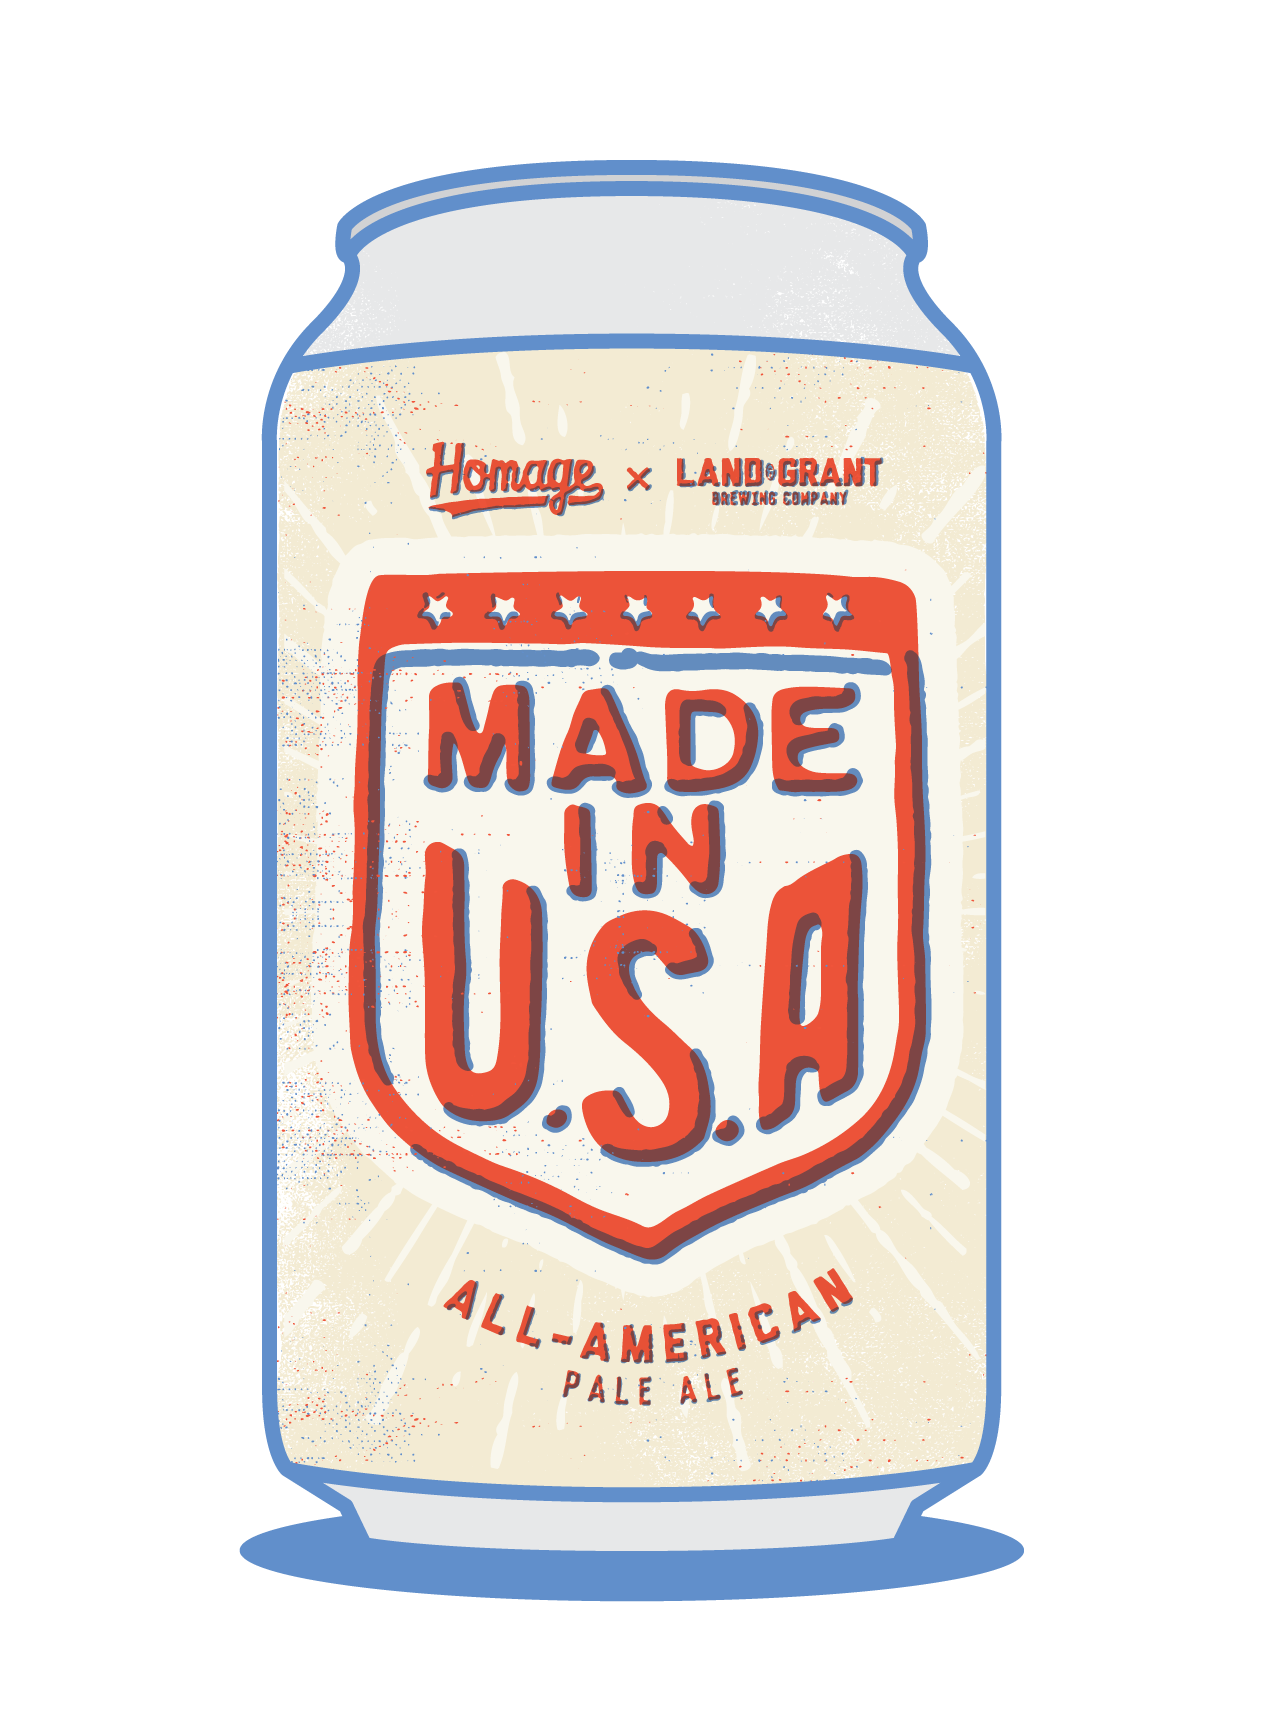 All-American Image